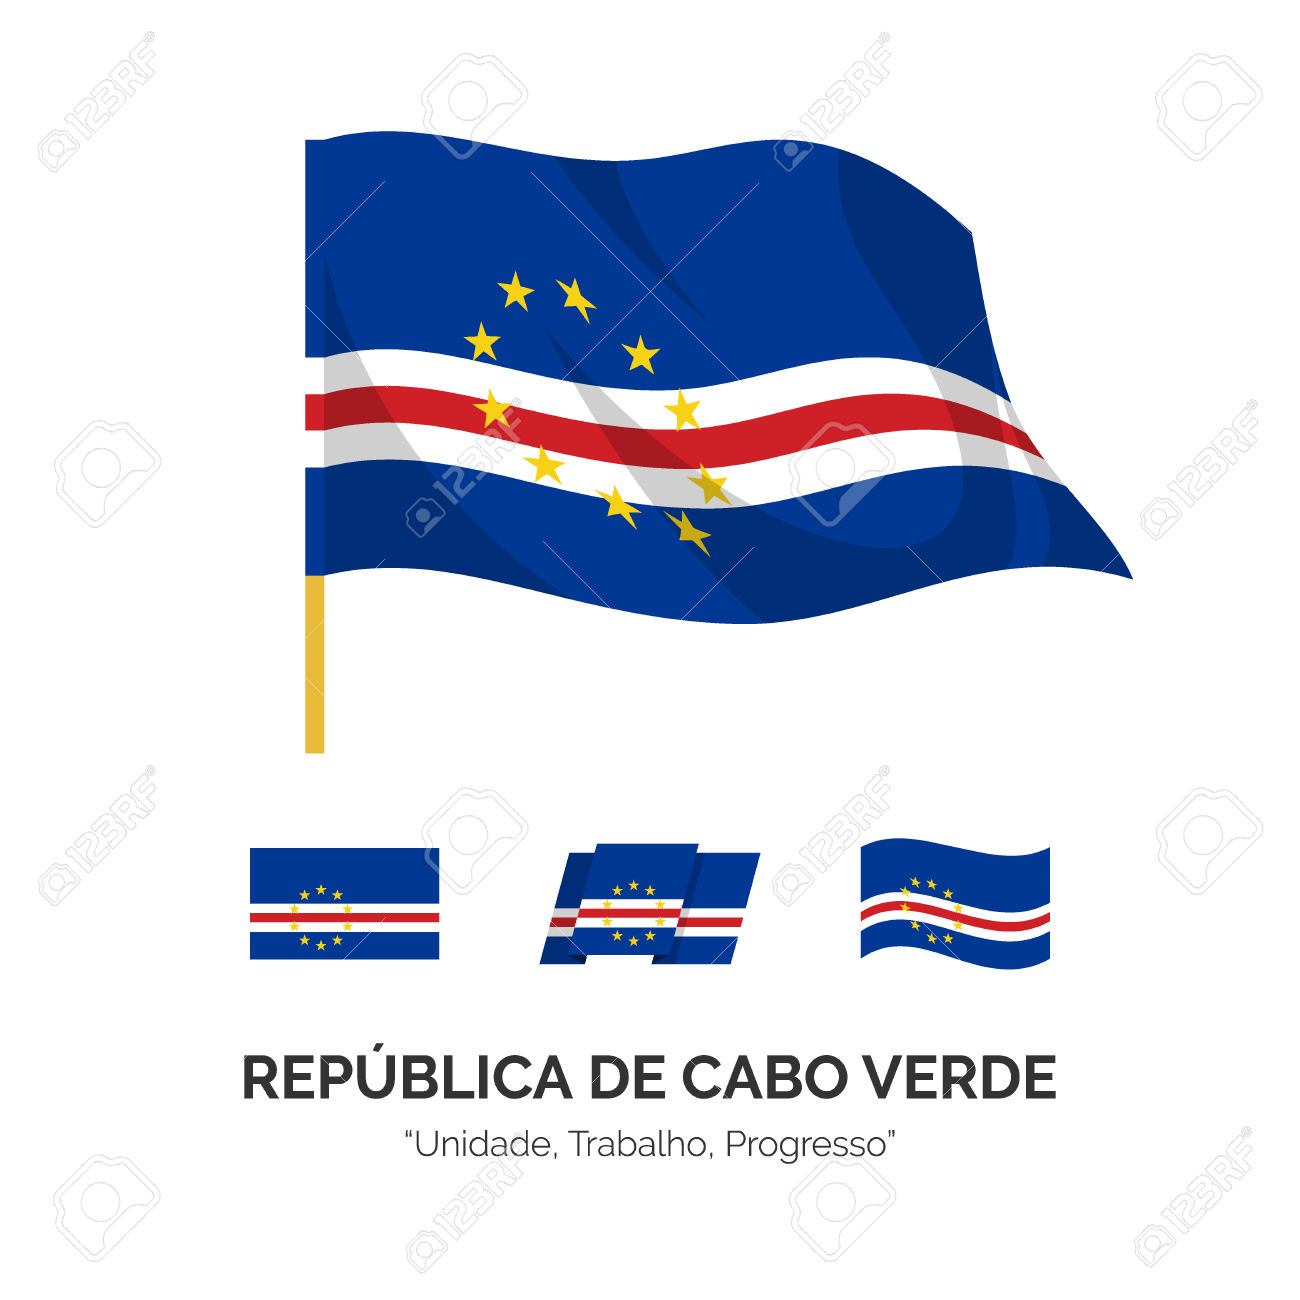 The National Flag Of The Republic Of Cape Verde. The Cape Verde.